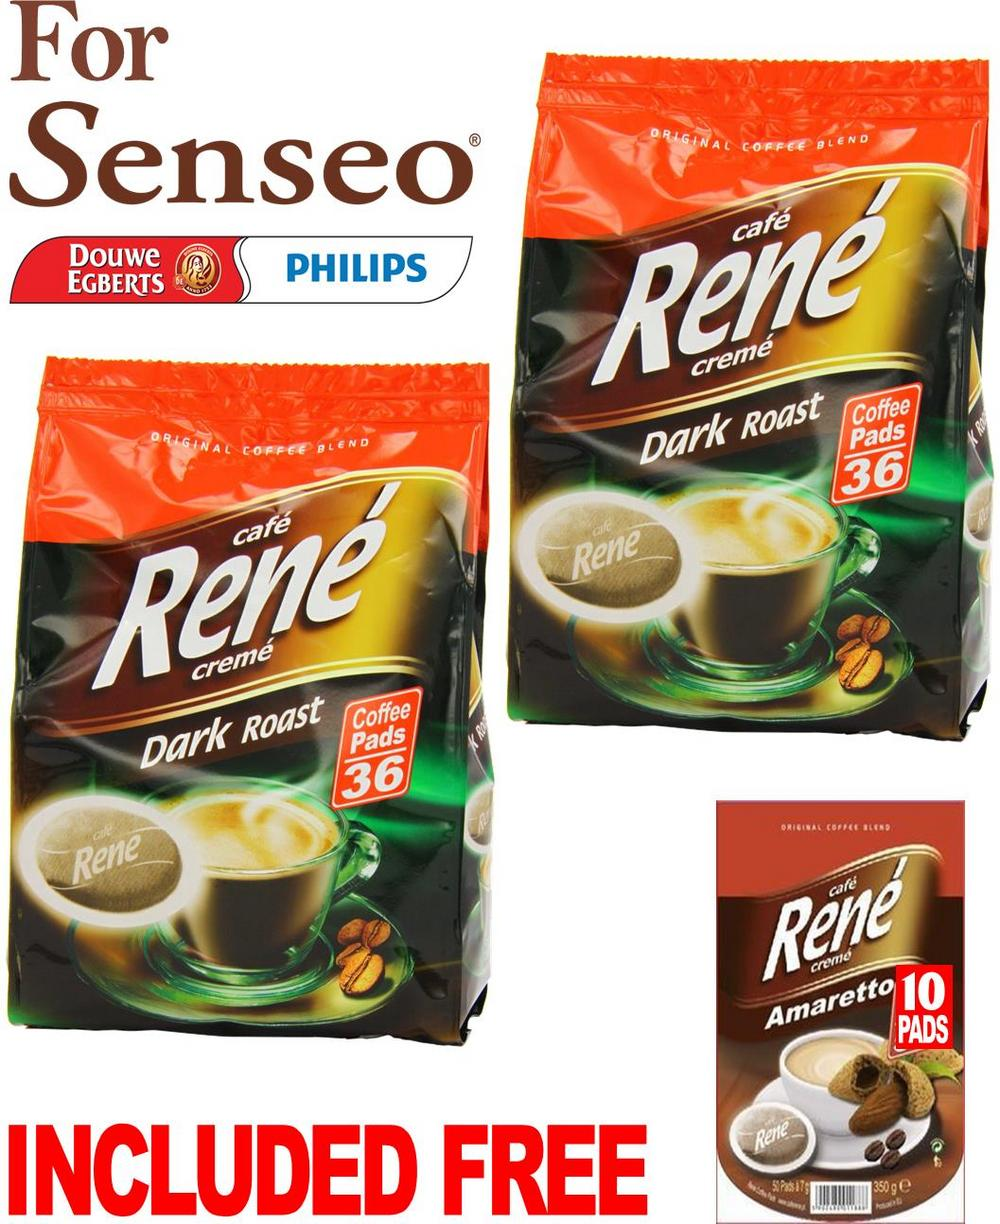 Philips Senseo 72 x Cafe Rene Cremé Dark Roast Coffee Pads Bags Pods